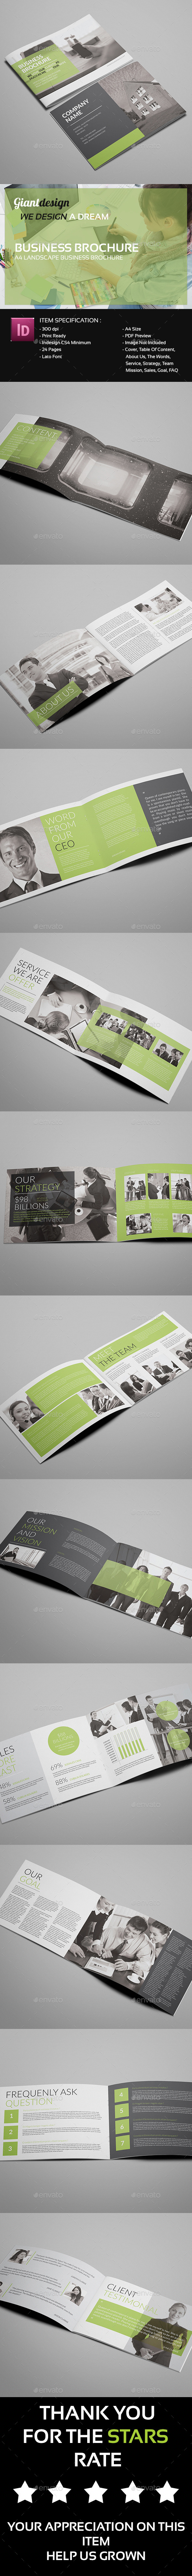 GraphicRiver Business Brochure 10925256